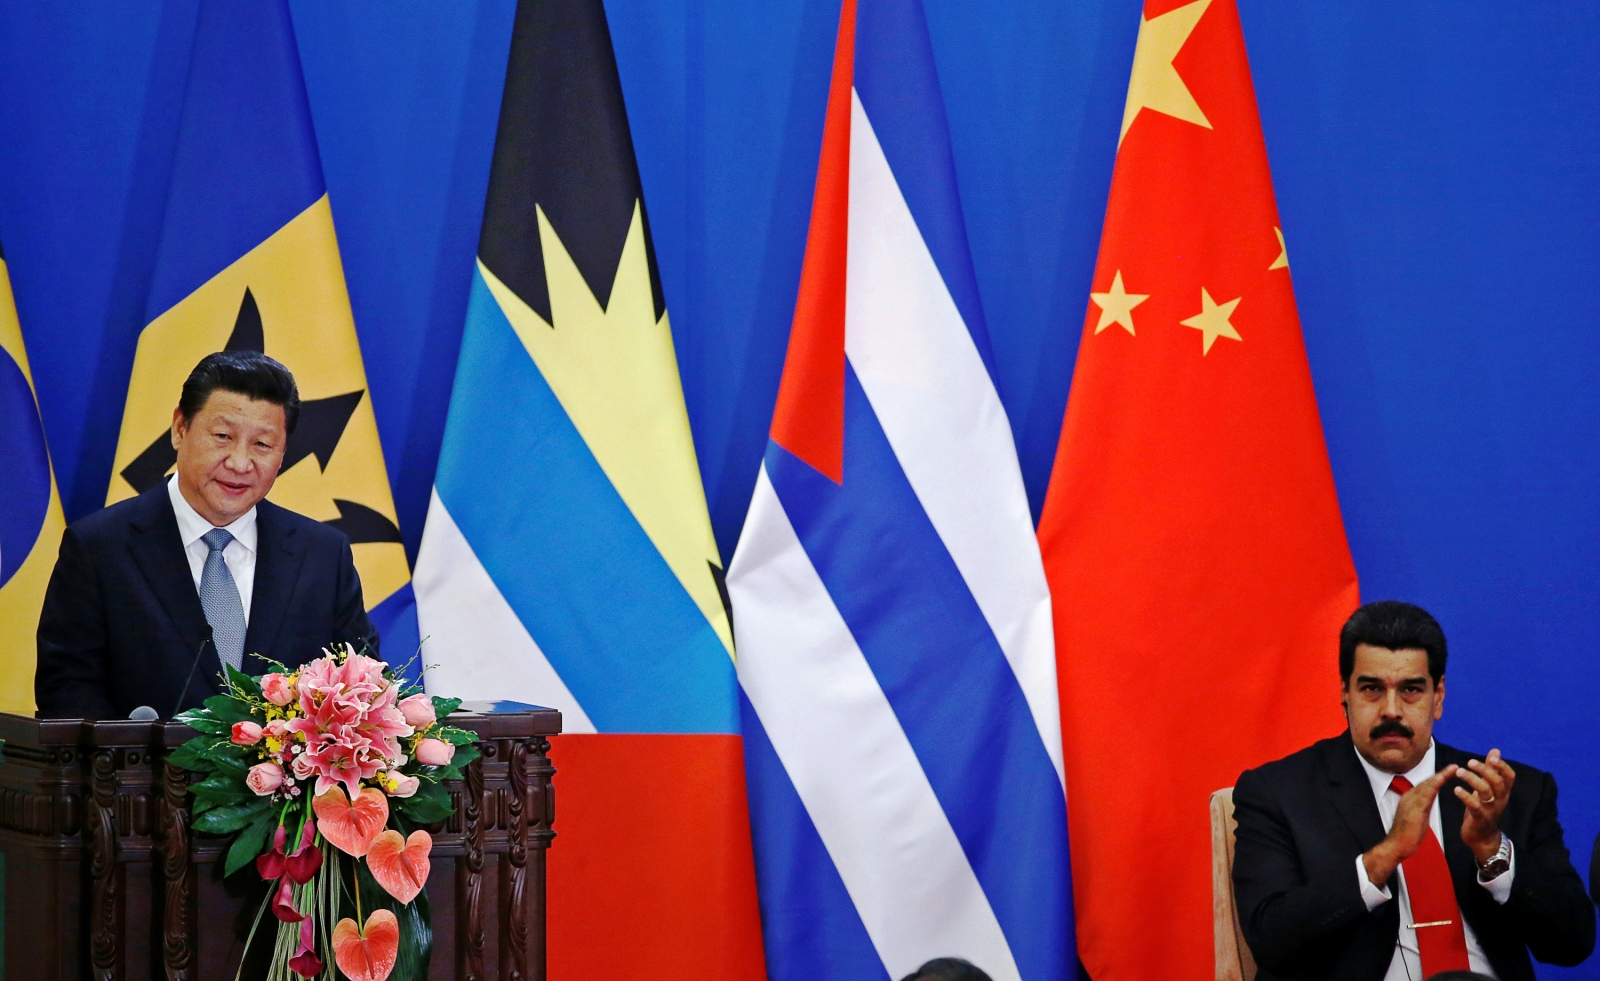 China to invest $250bn in Latin America over 10 years